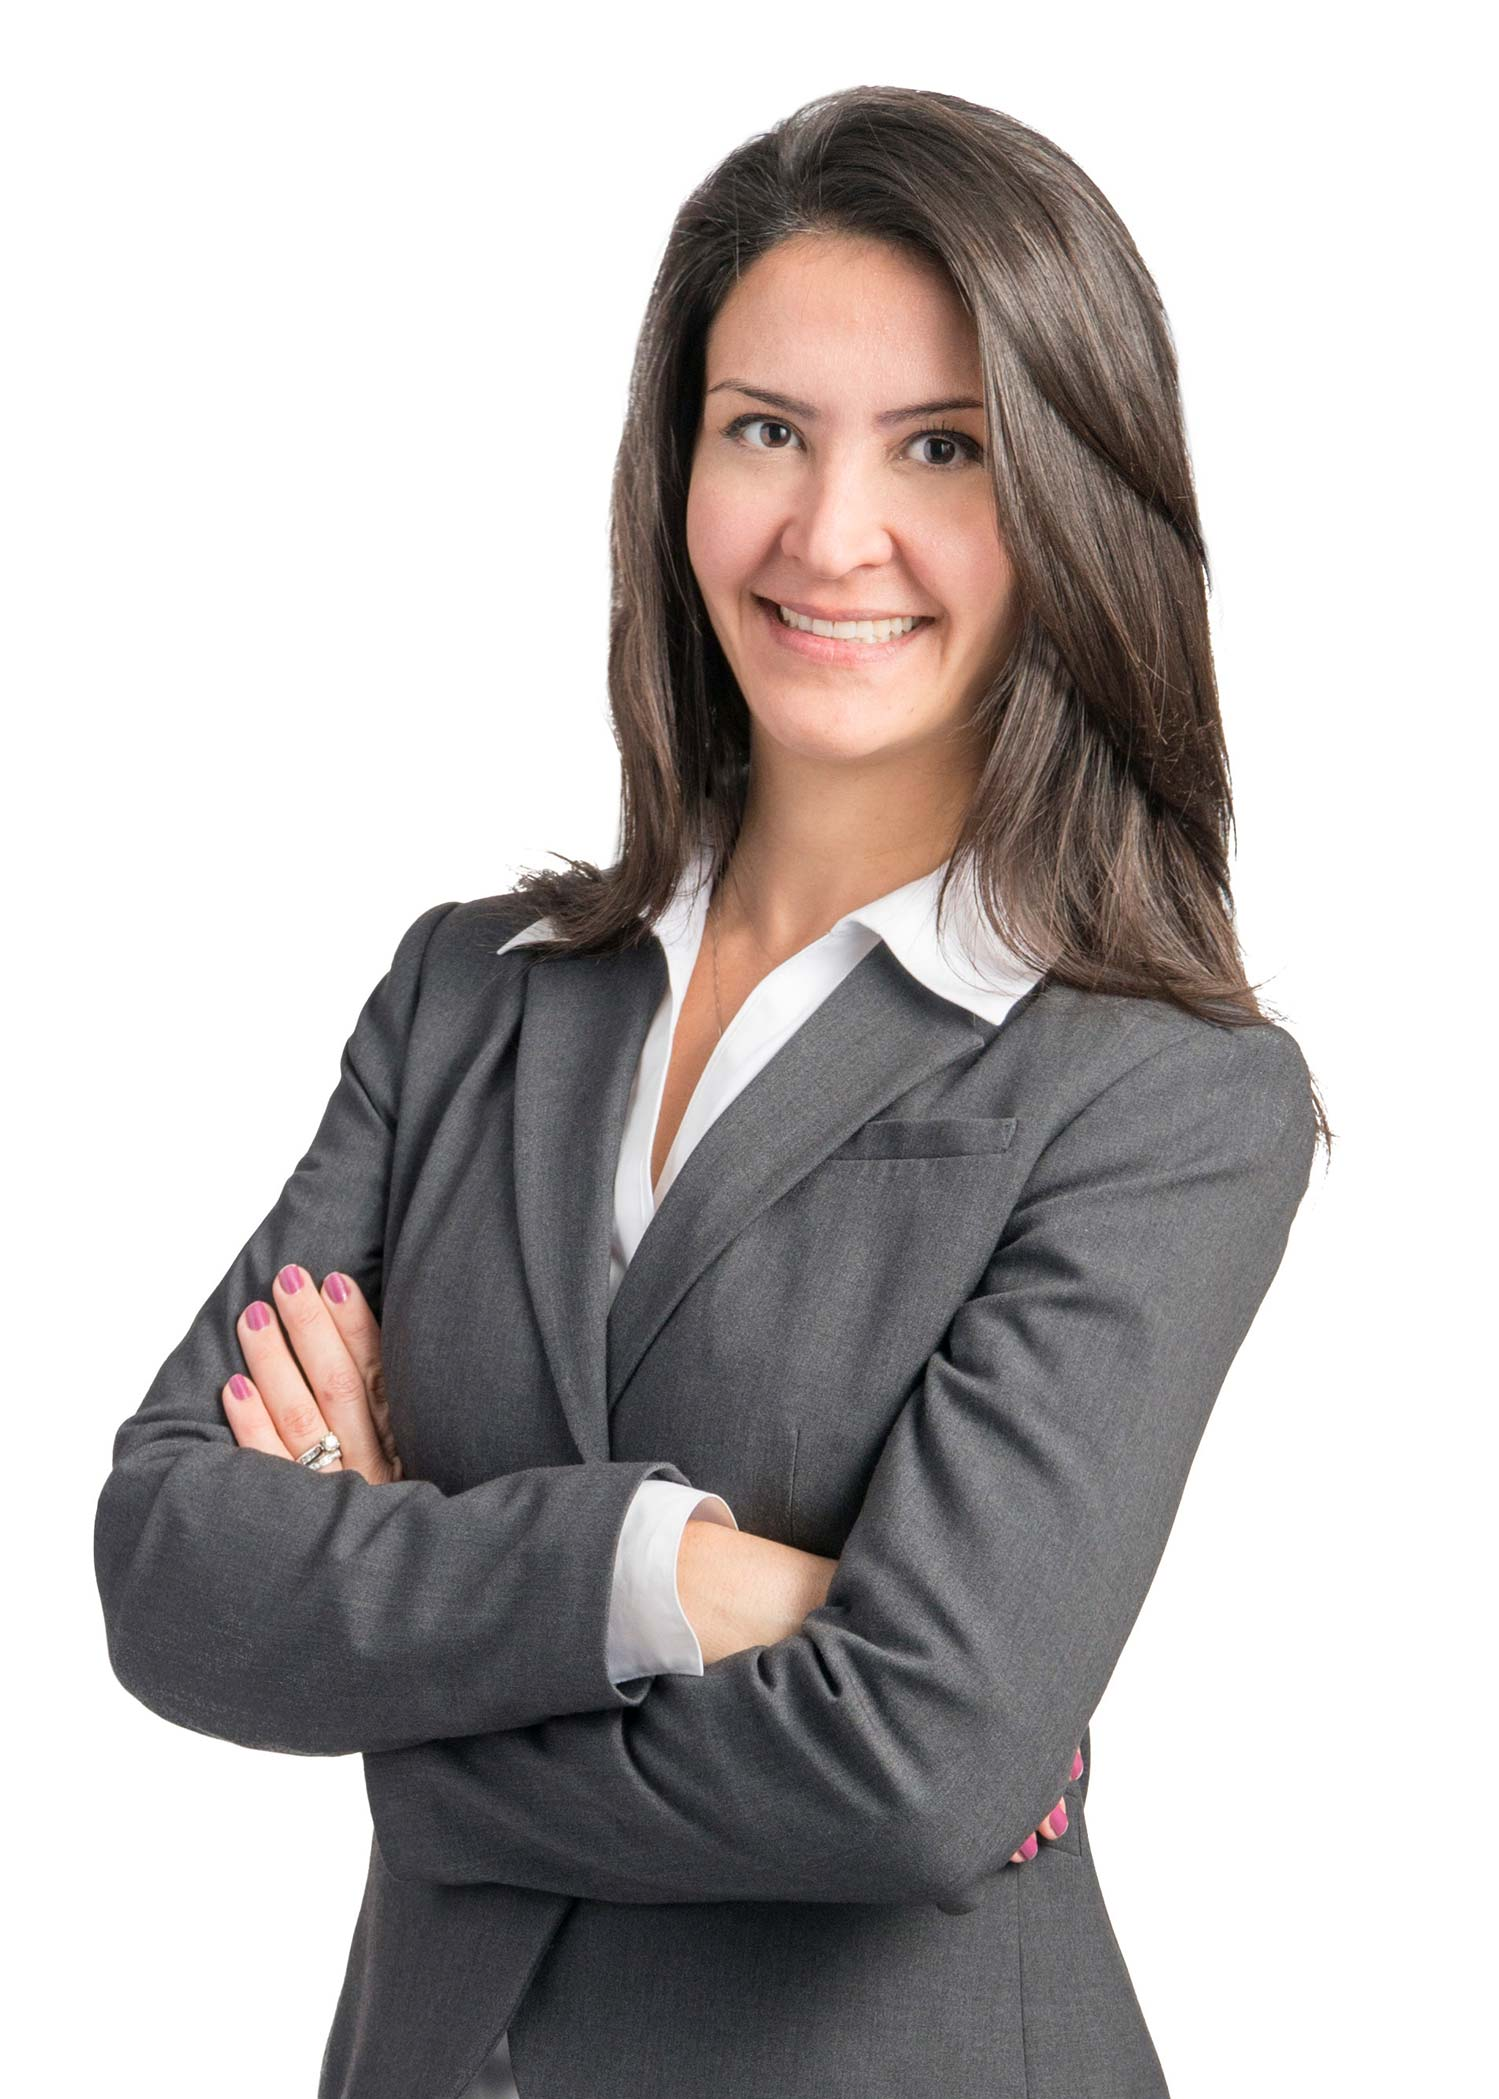 Fabiana Baum - Texas Personal Injury Lawyer